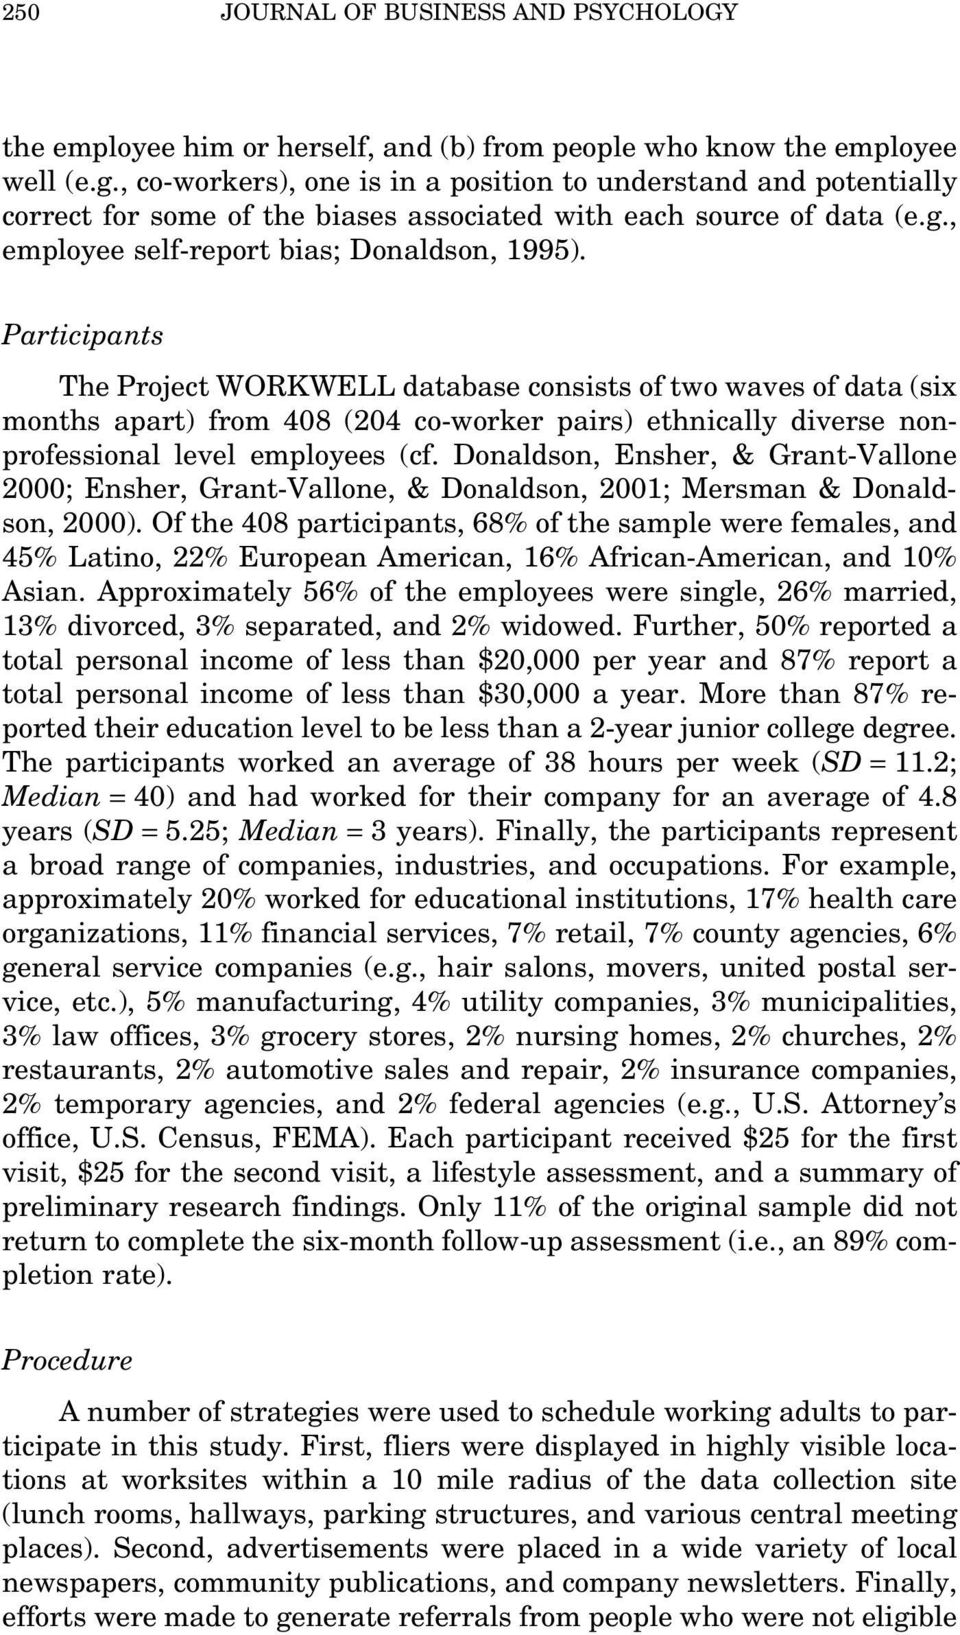 Participants The Project WORKWELL database consists of two waves of data (six months apart) from 408 (204 co-worker pairs) ethnically diverse nonprofessional level employees (cf.